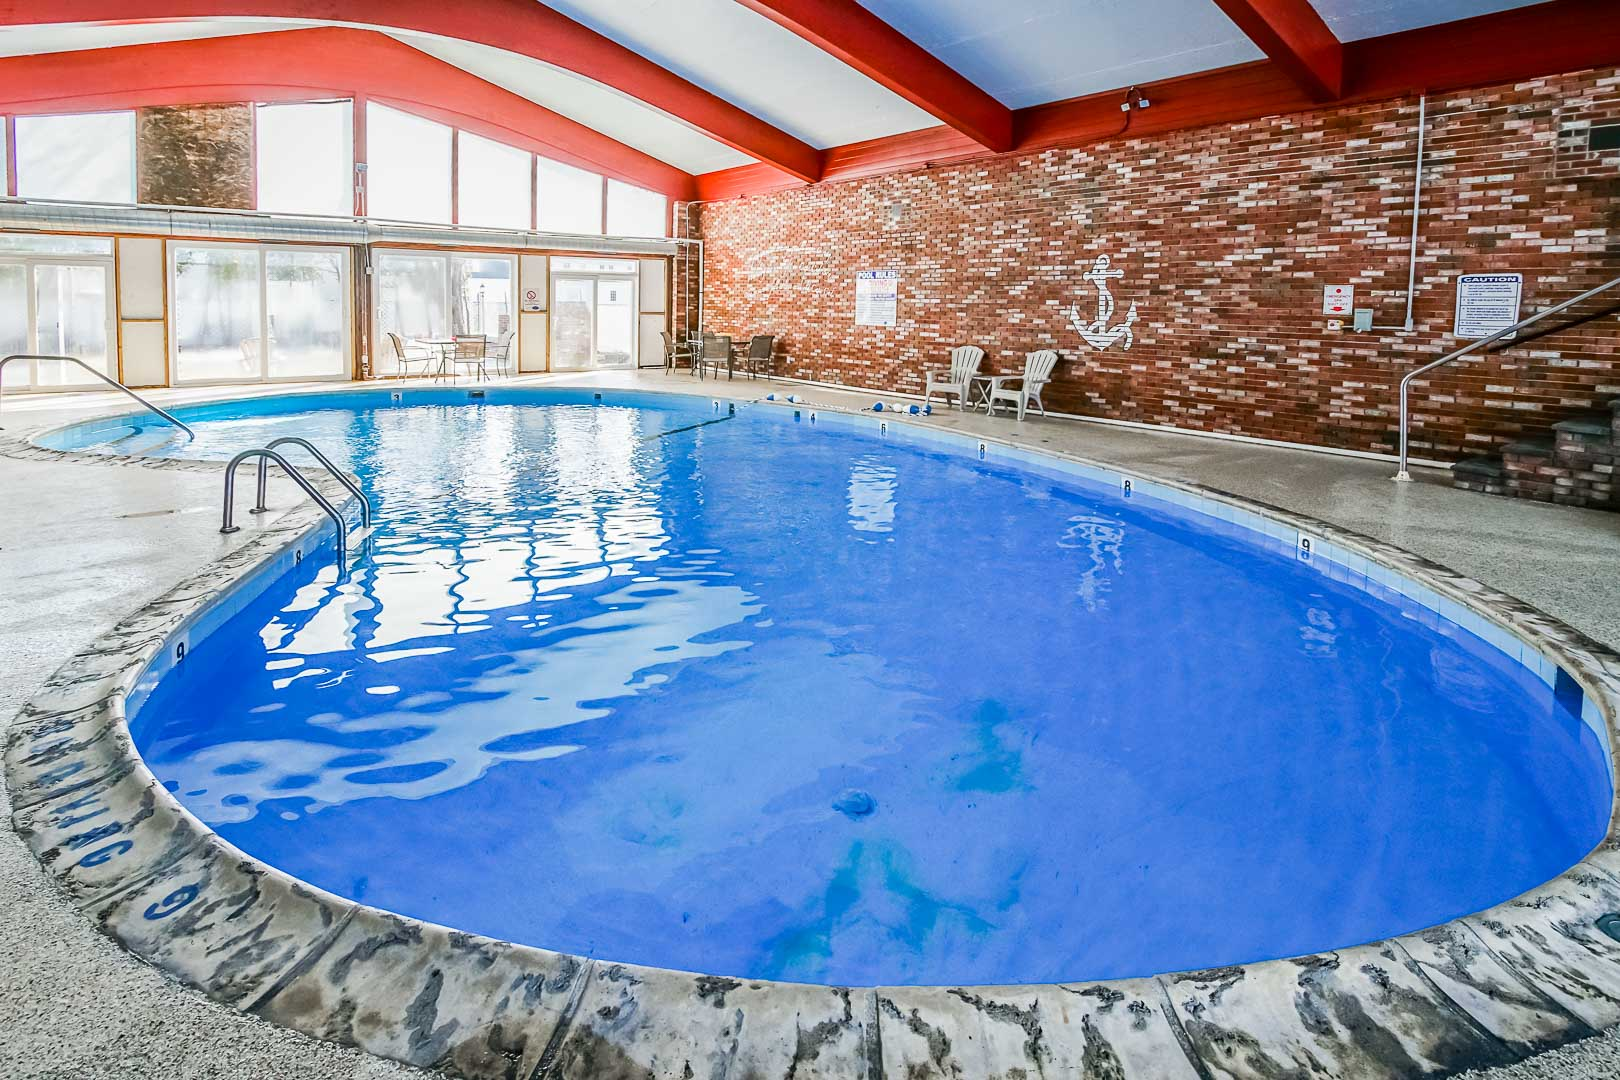 A crisp and clean indoor swimming pool at VRI's Courtyard Resort in Massachusetts.